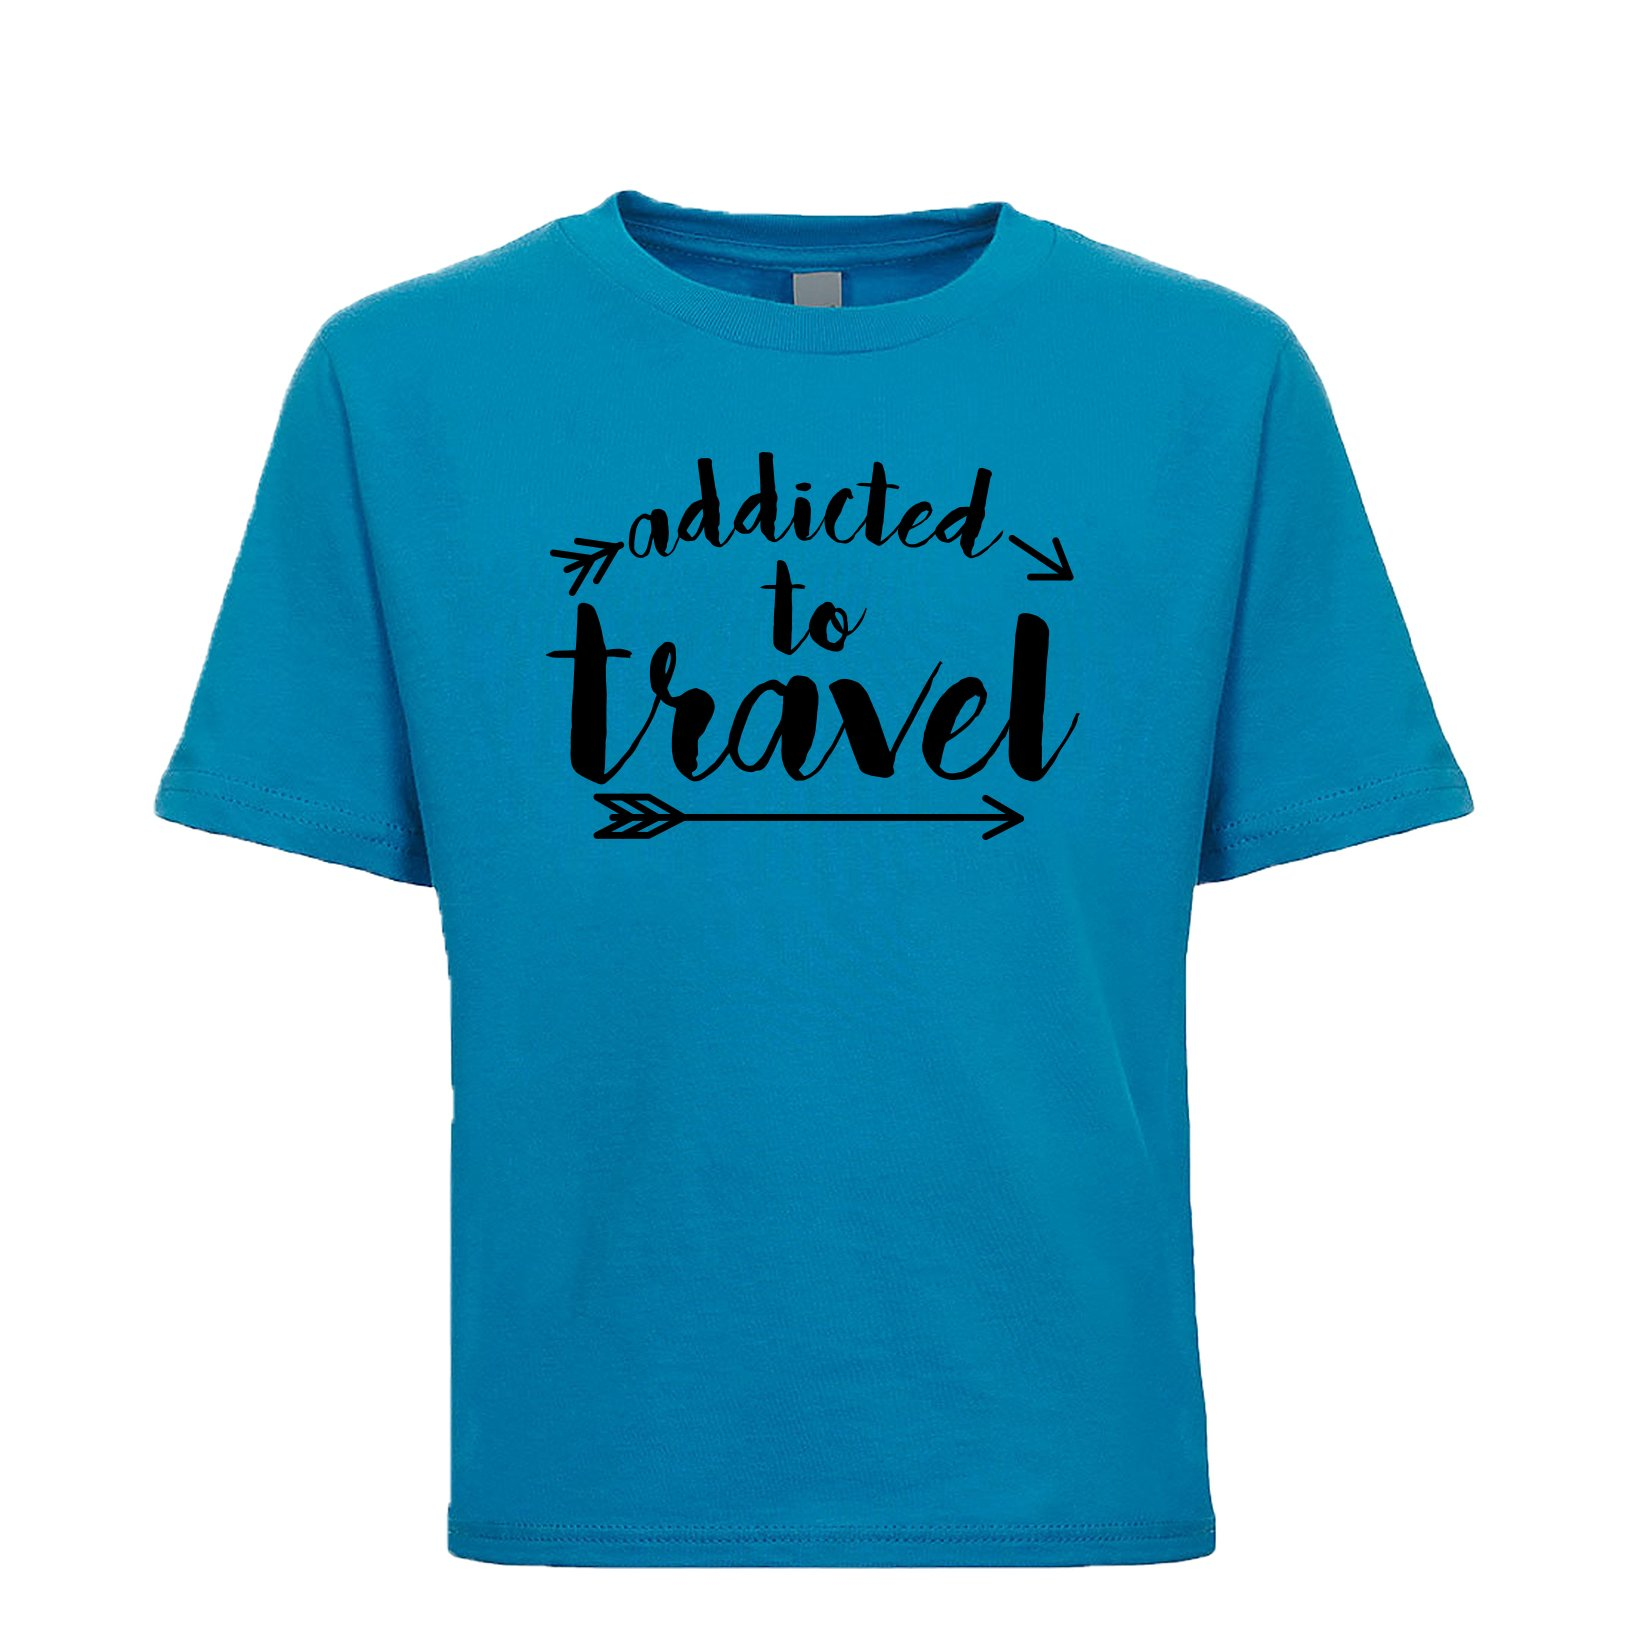 Shirtgoals Addicted to Travel Unisex Kids Tee Turquoise X-Small